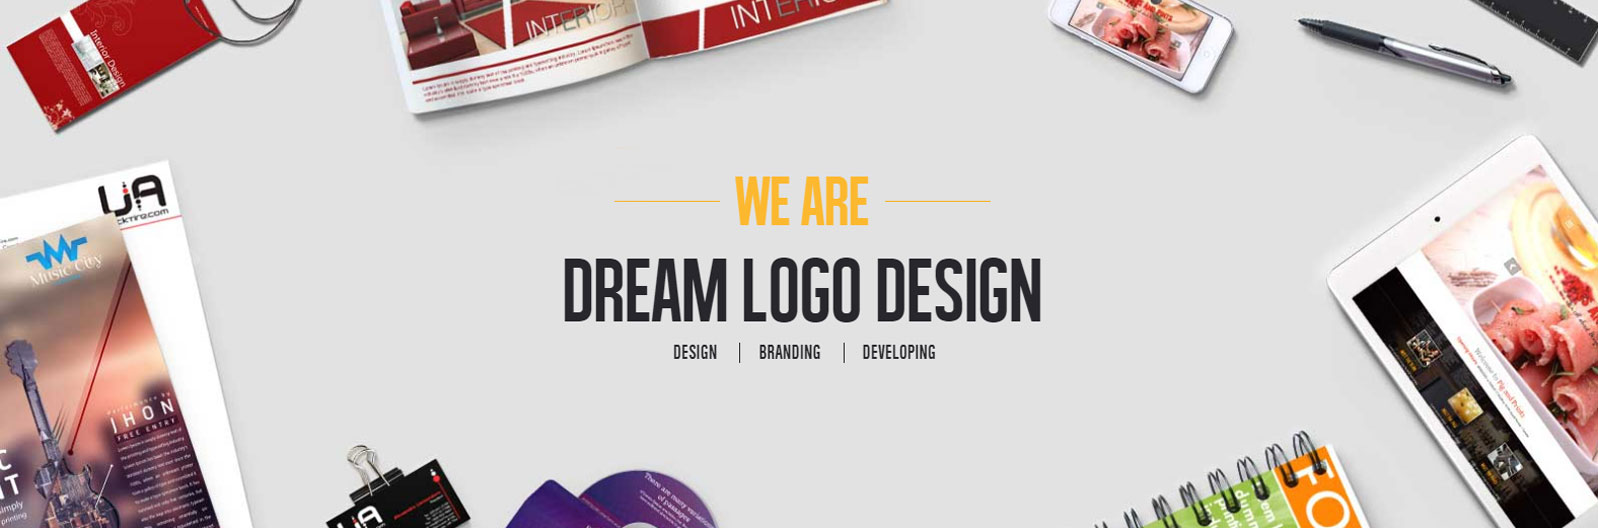 Zuji Networki Logo Design – DreamLogoDesign